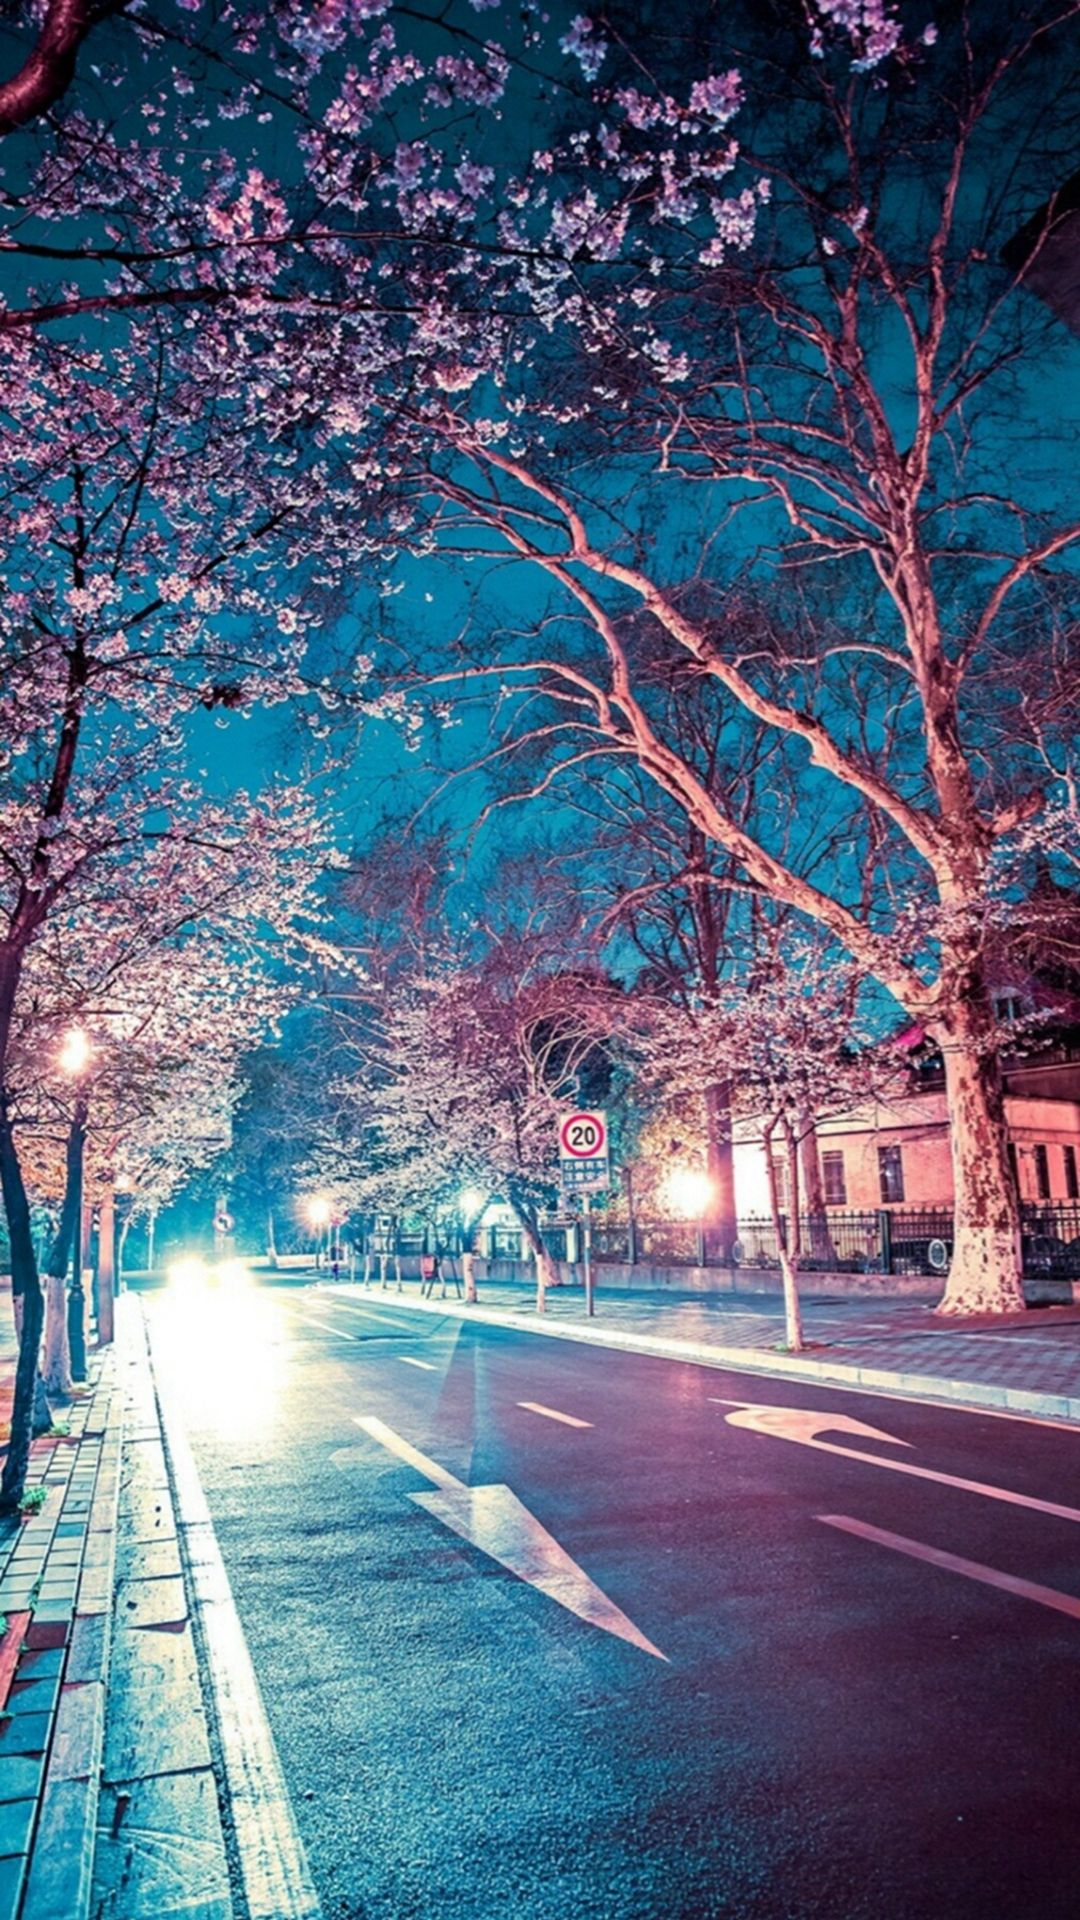 Japanese Street Cherry Blossom Night Scenery Iphone 6 Wallpaper Download Iphone Wallpapers Ipad Wal Night Scenery Scenery Wallpaper Cherry Blossom Wallpaper